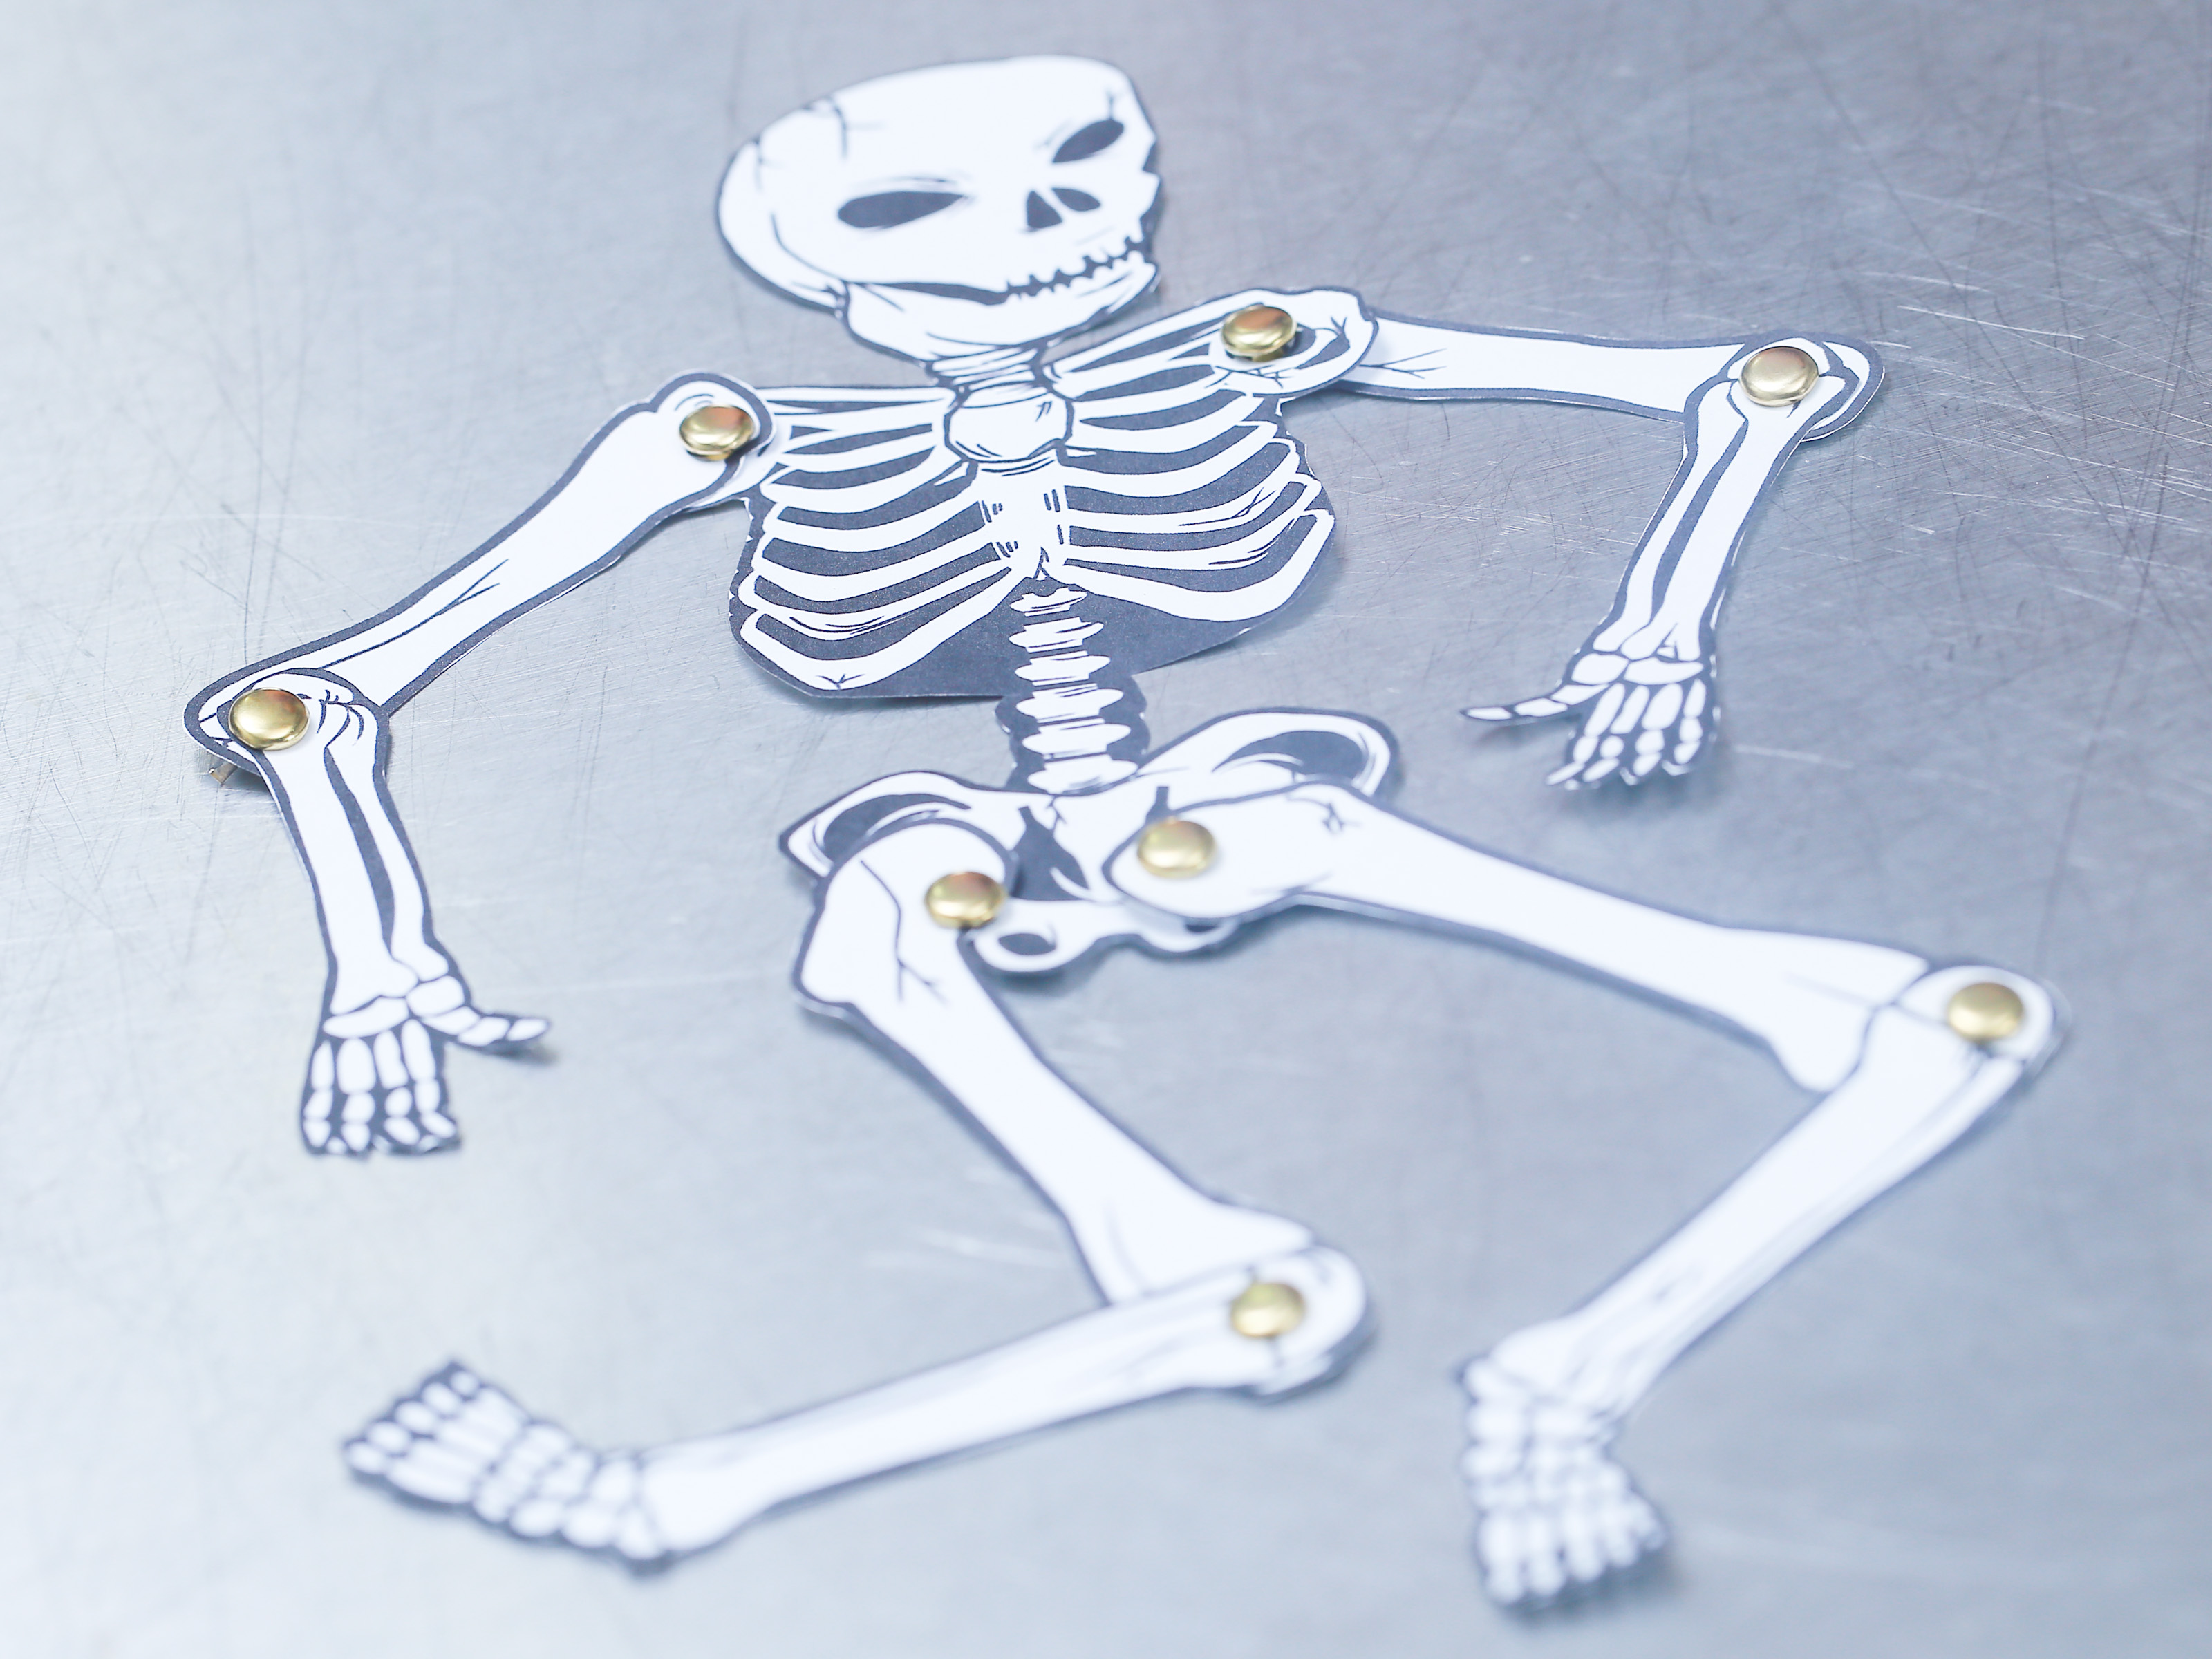 How To Make A Human Skeleton Out Of Paper 12 Steps